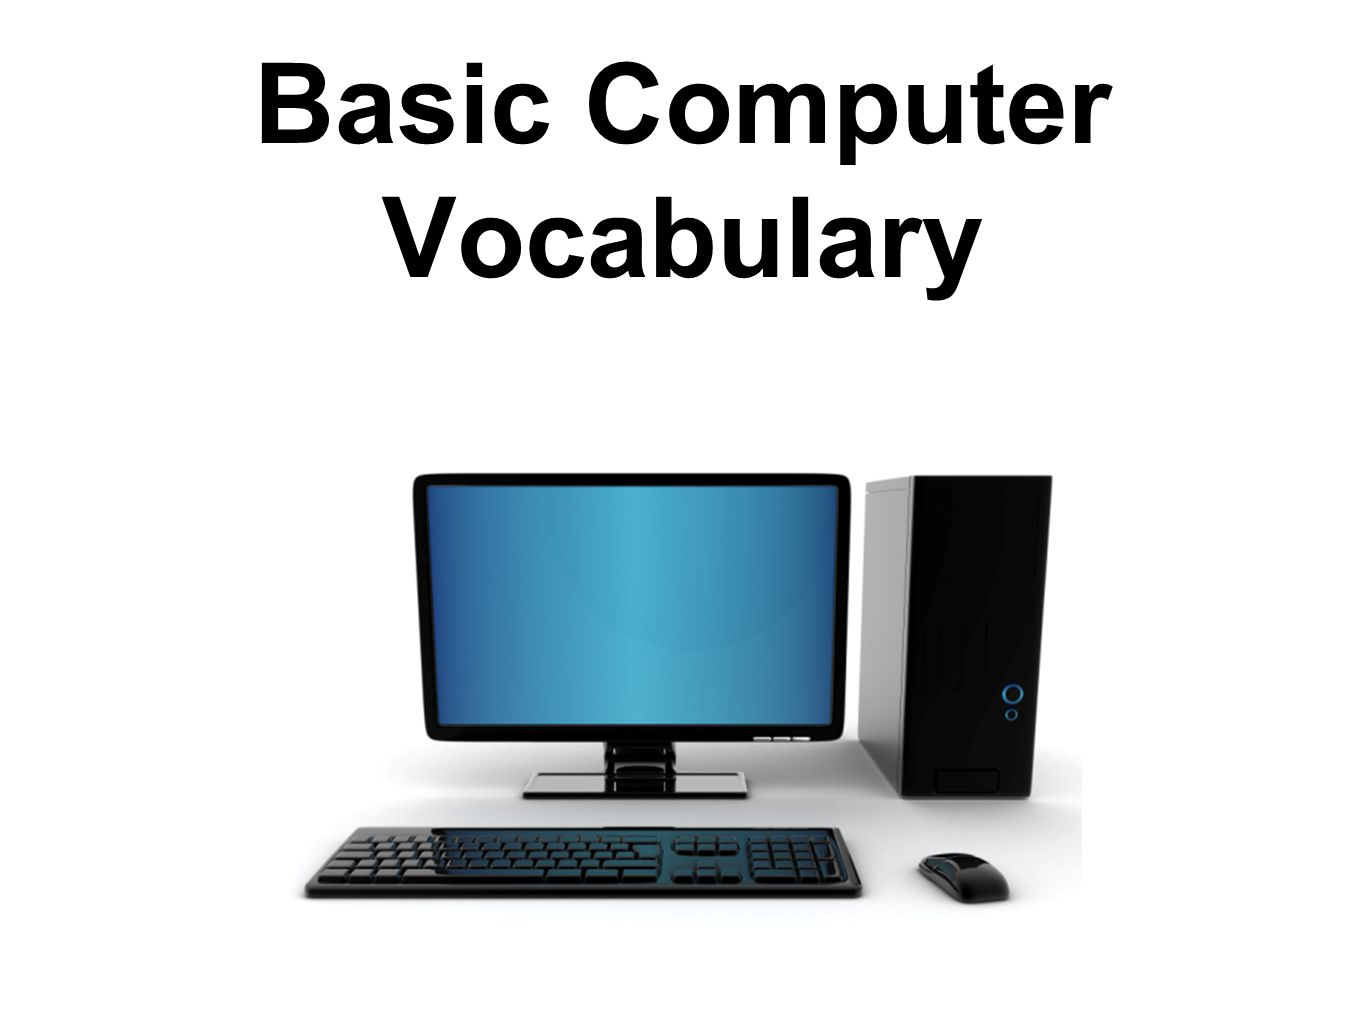 Basic Computer Vocabulary